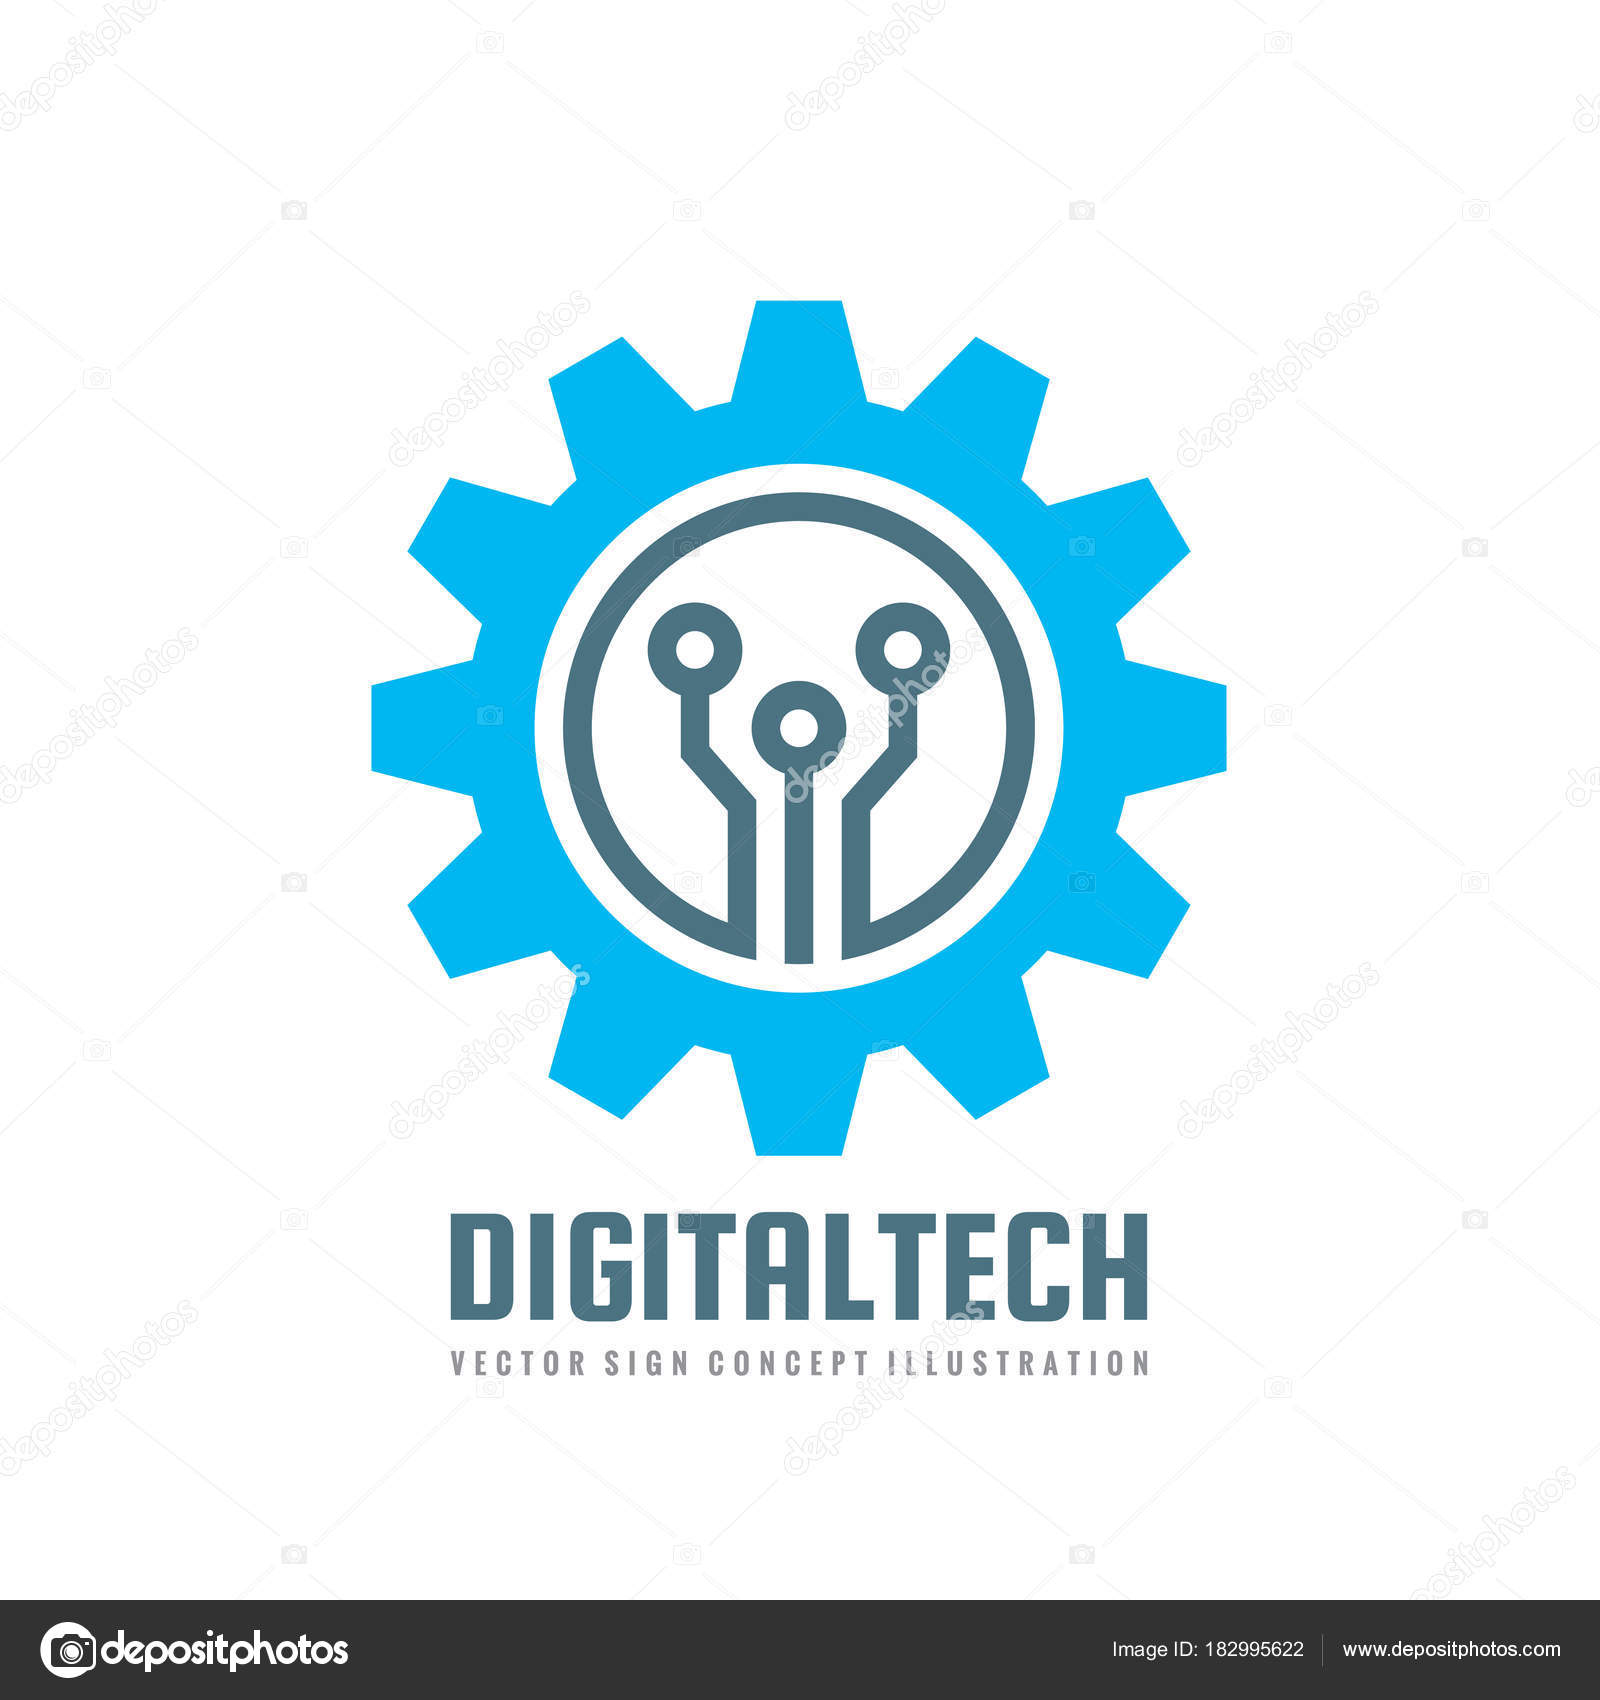 Digital tech vector business logo template concept illustration gear digital tech vector business logo template concept illustration gear electronic factory sign cog wheel technology symbol mining industry seo emblem cheaphphosting Gallery